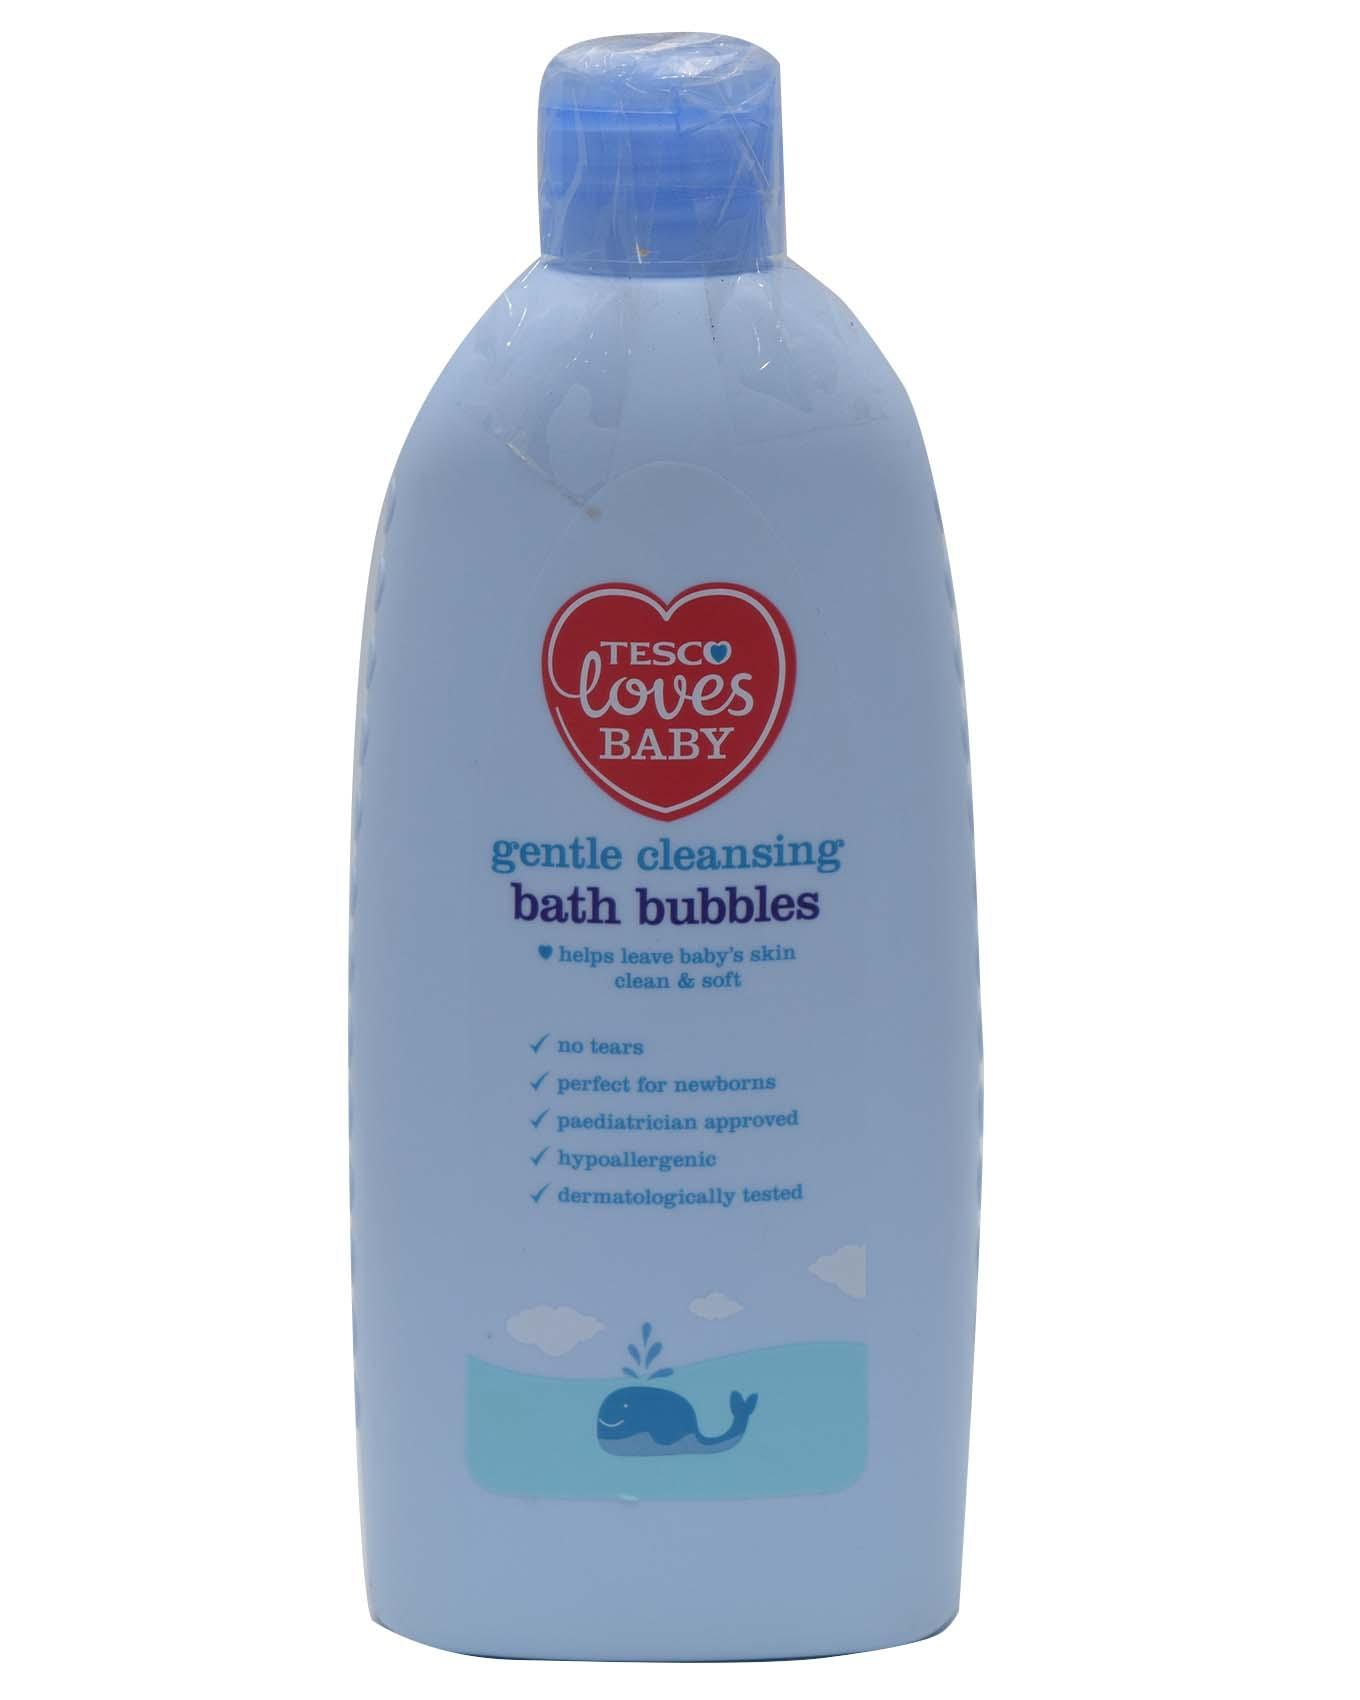 Baby's Gentle Cleaning Bath Bubbles - Blue